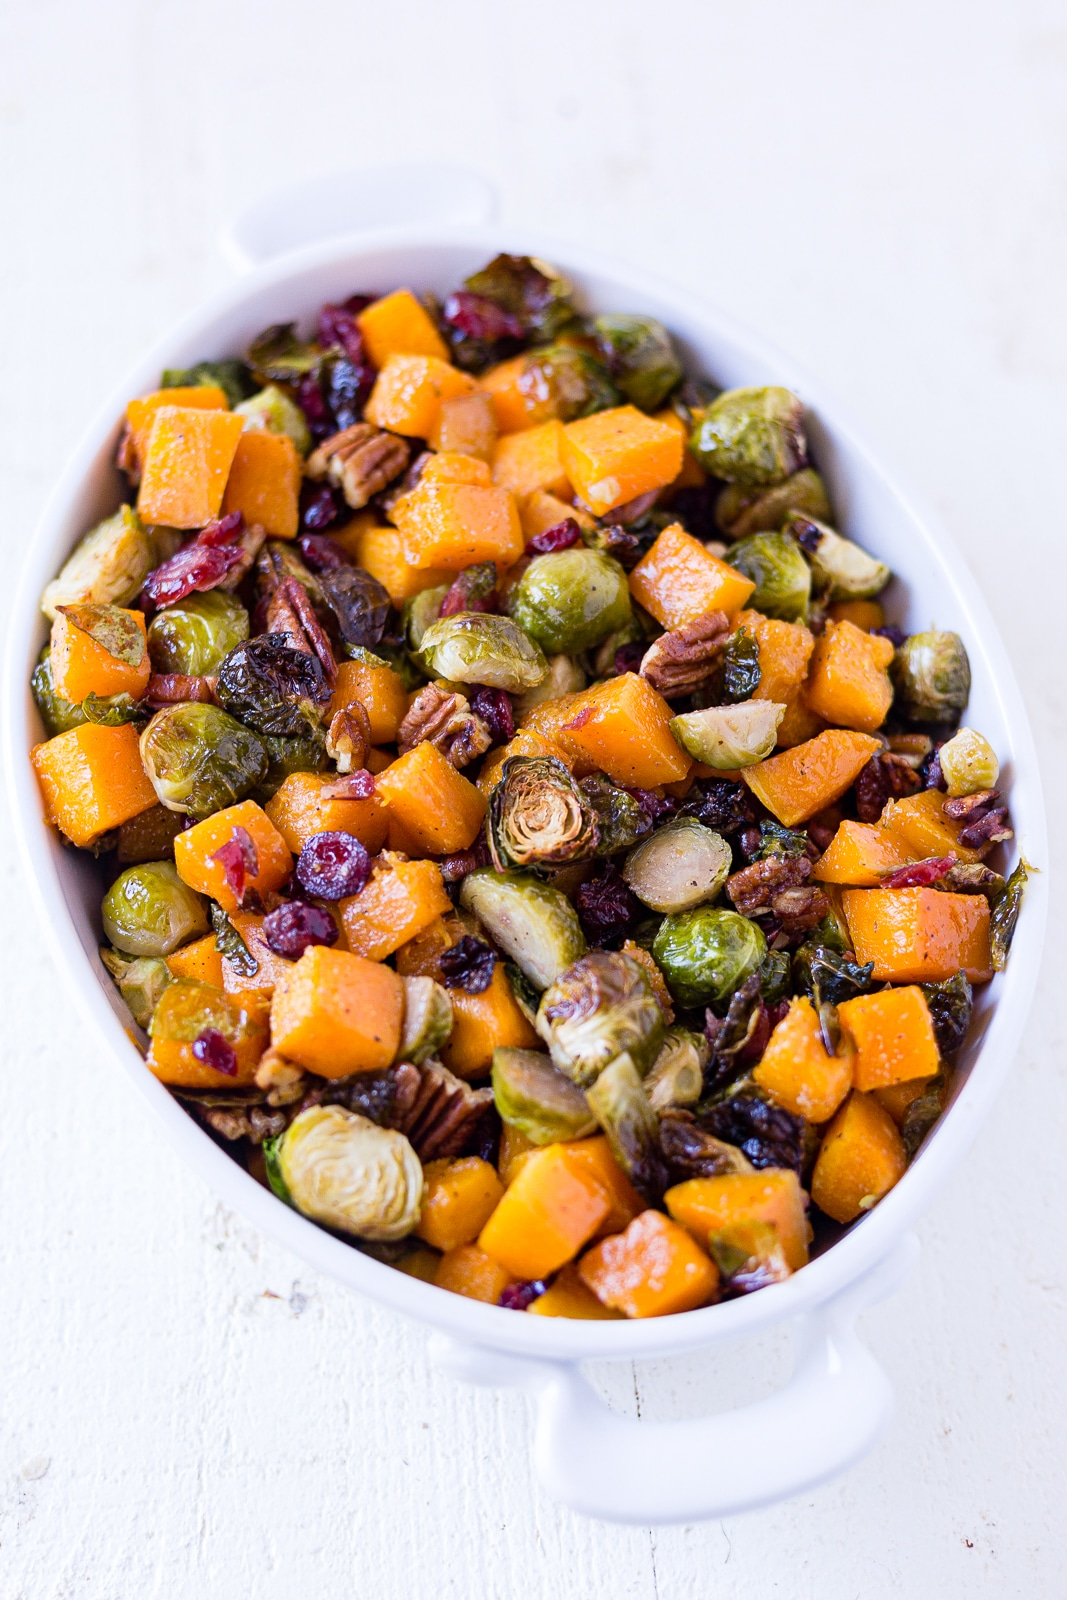 butternut squash and brussel sprouts in a serving bowl with cranberries and pecans